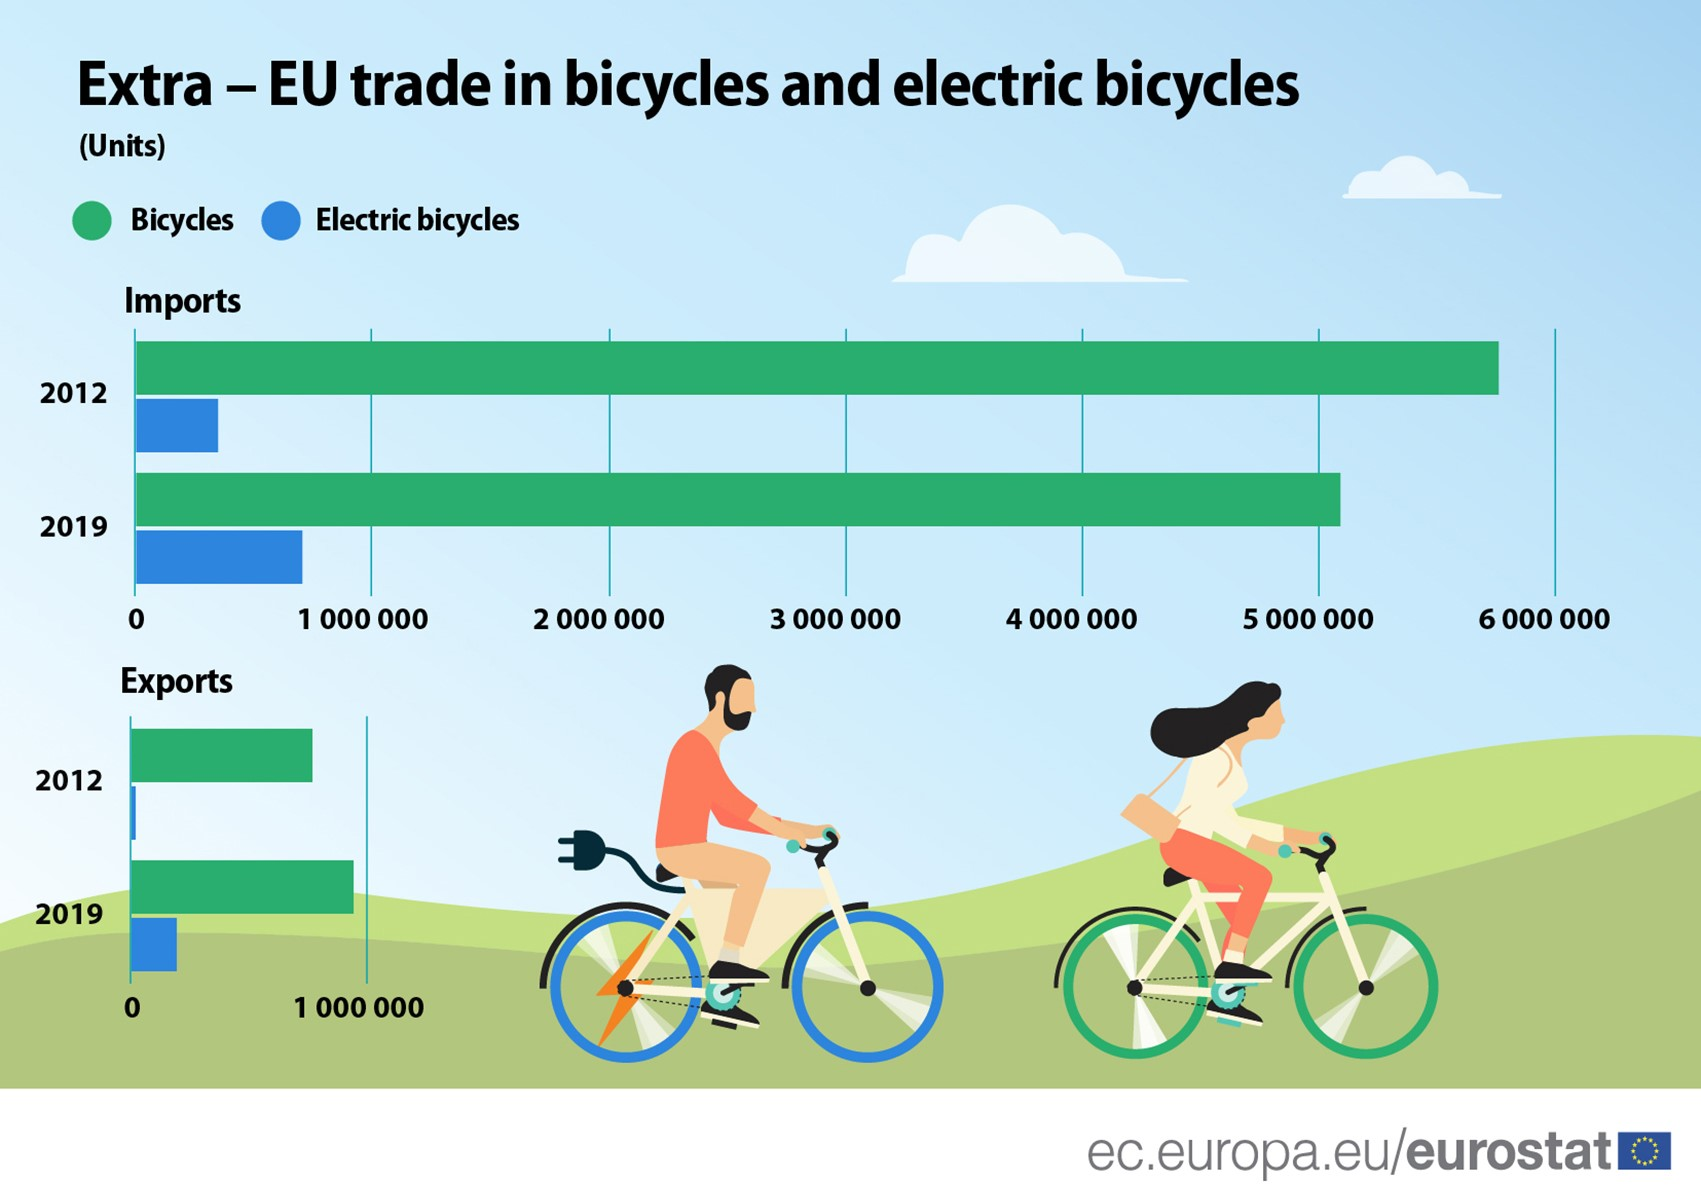 EU trade bicycles and electric bicycles